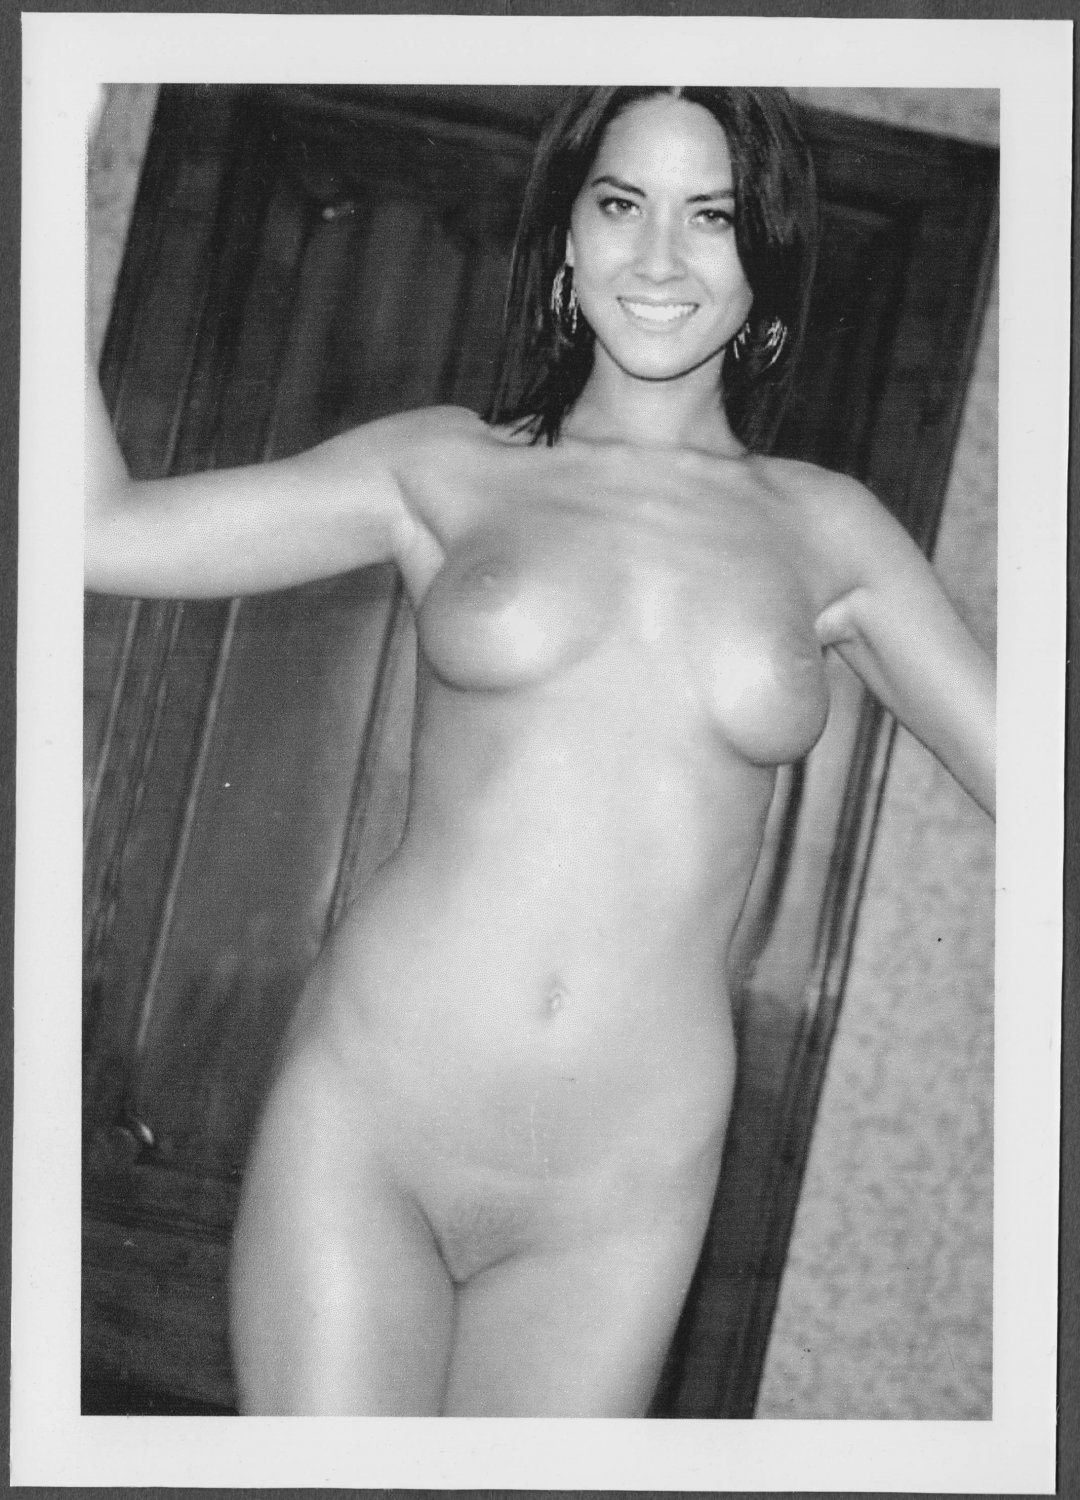 OLIVIA MUNN TOTALLY NUDE BIG LARGE BREASTS SHAVED PUSSY NEW REPRINT 5 X 7 #2